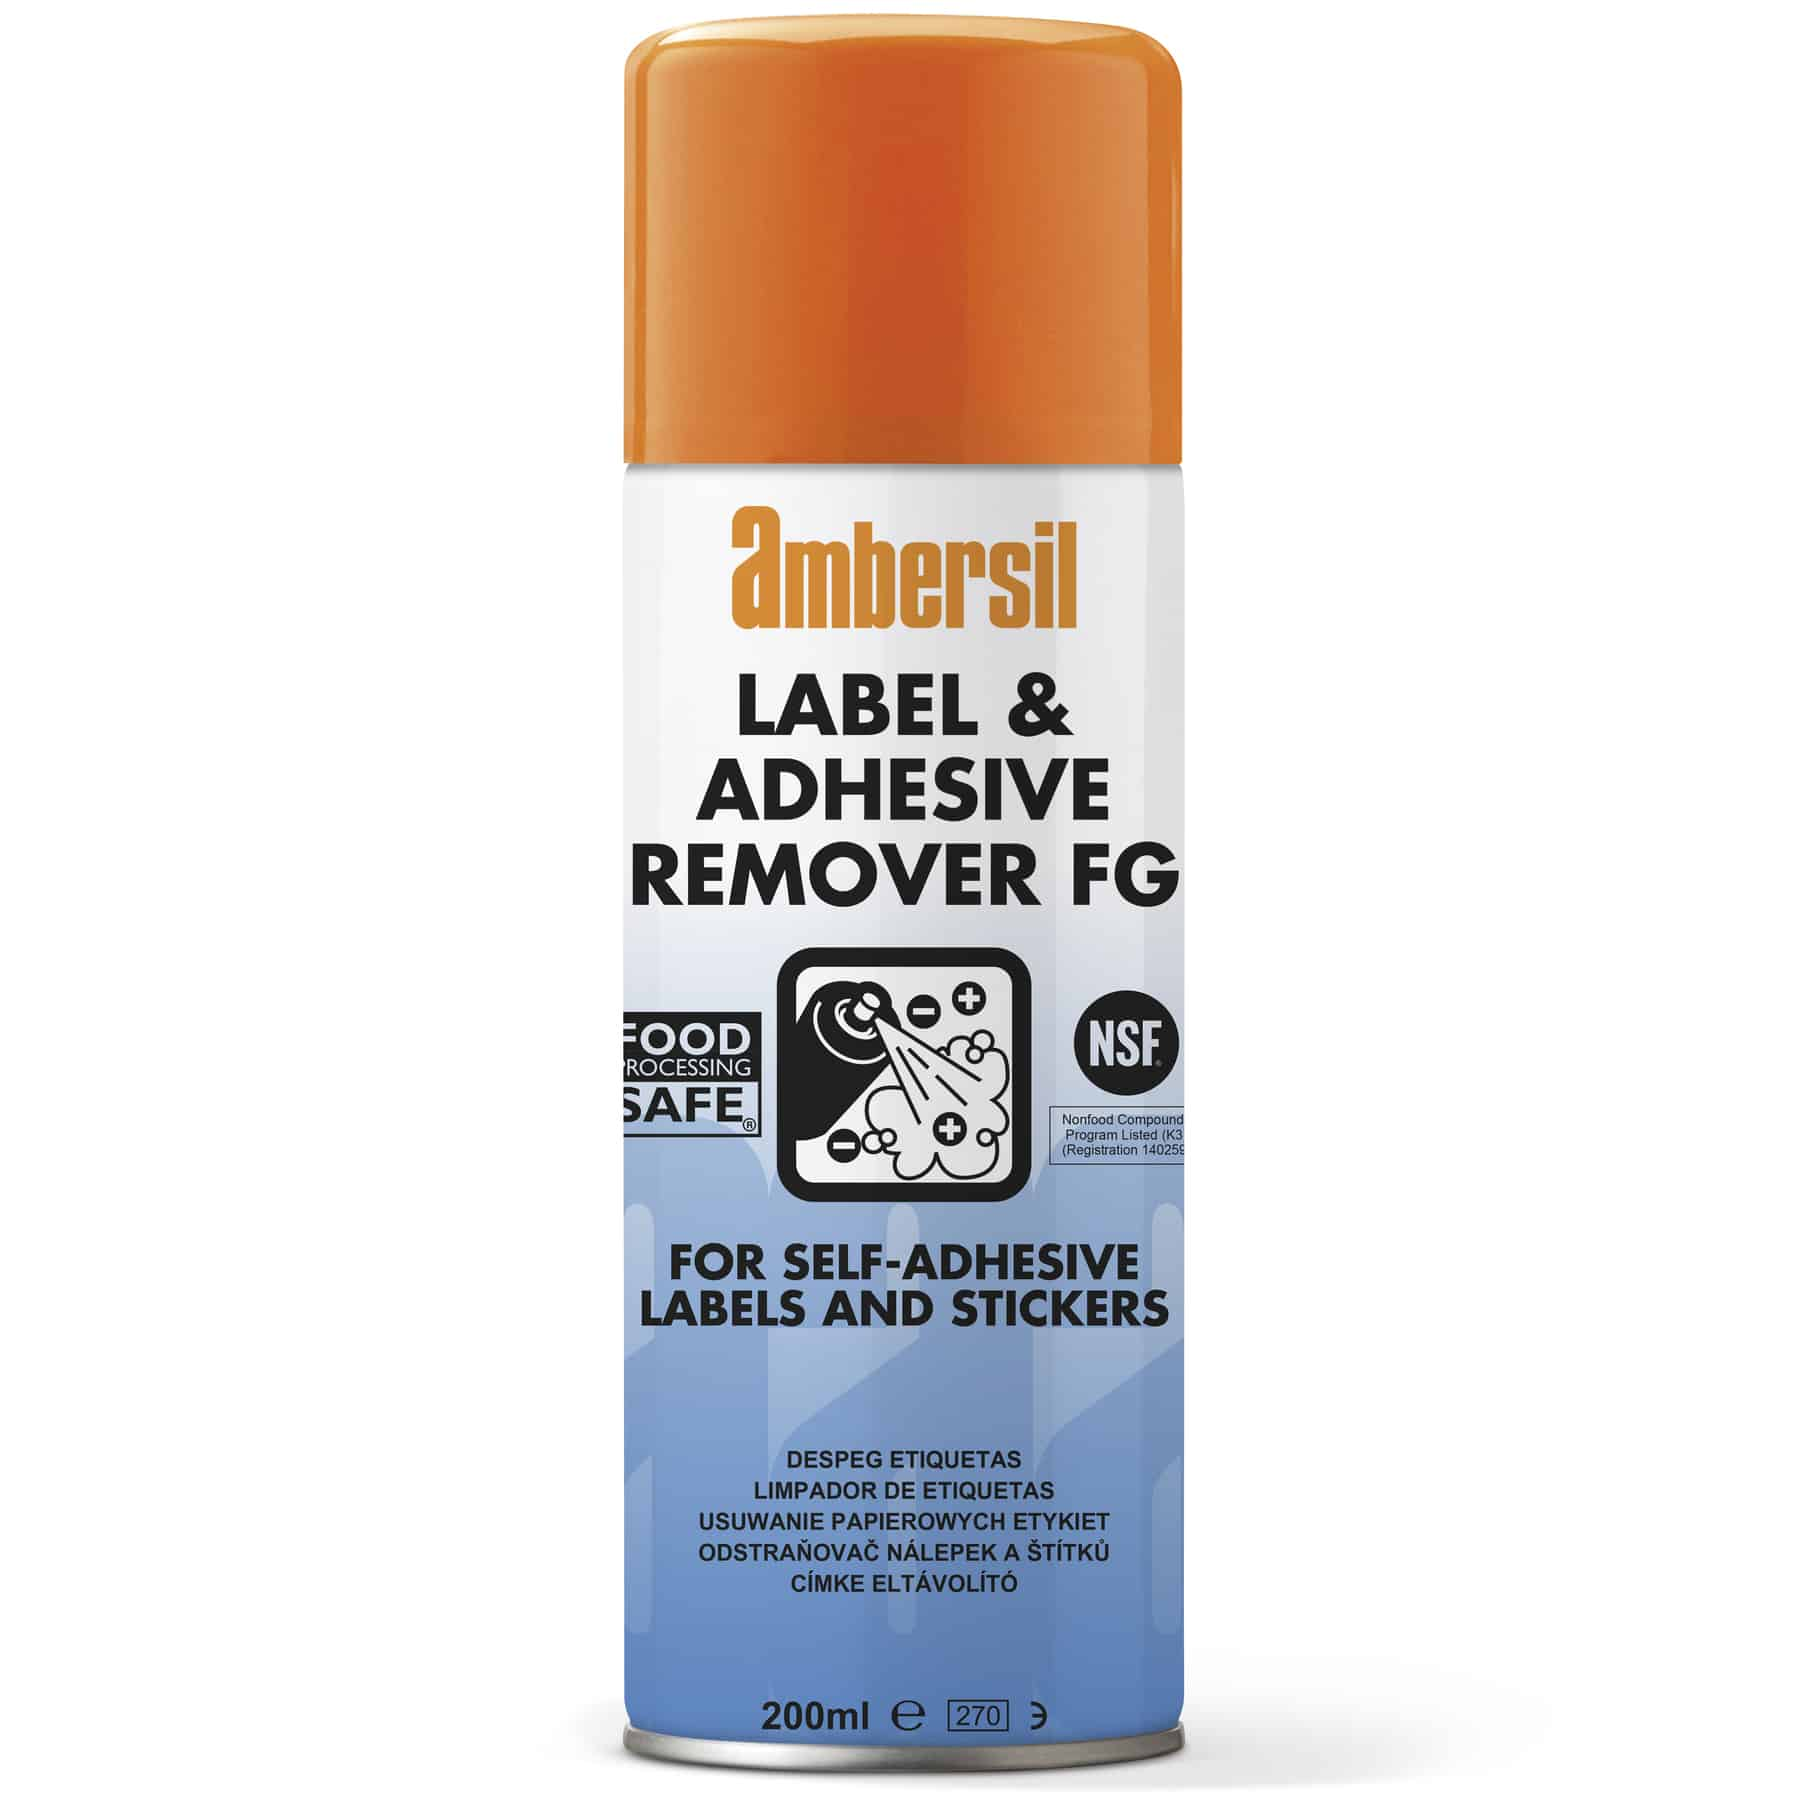 Label & Adhesive Remover FG 200ml